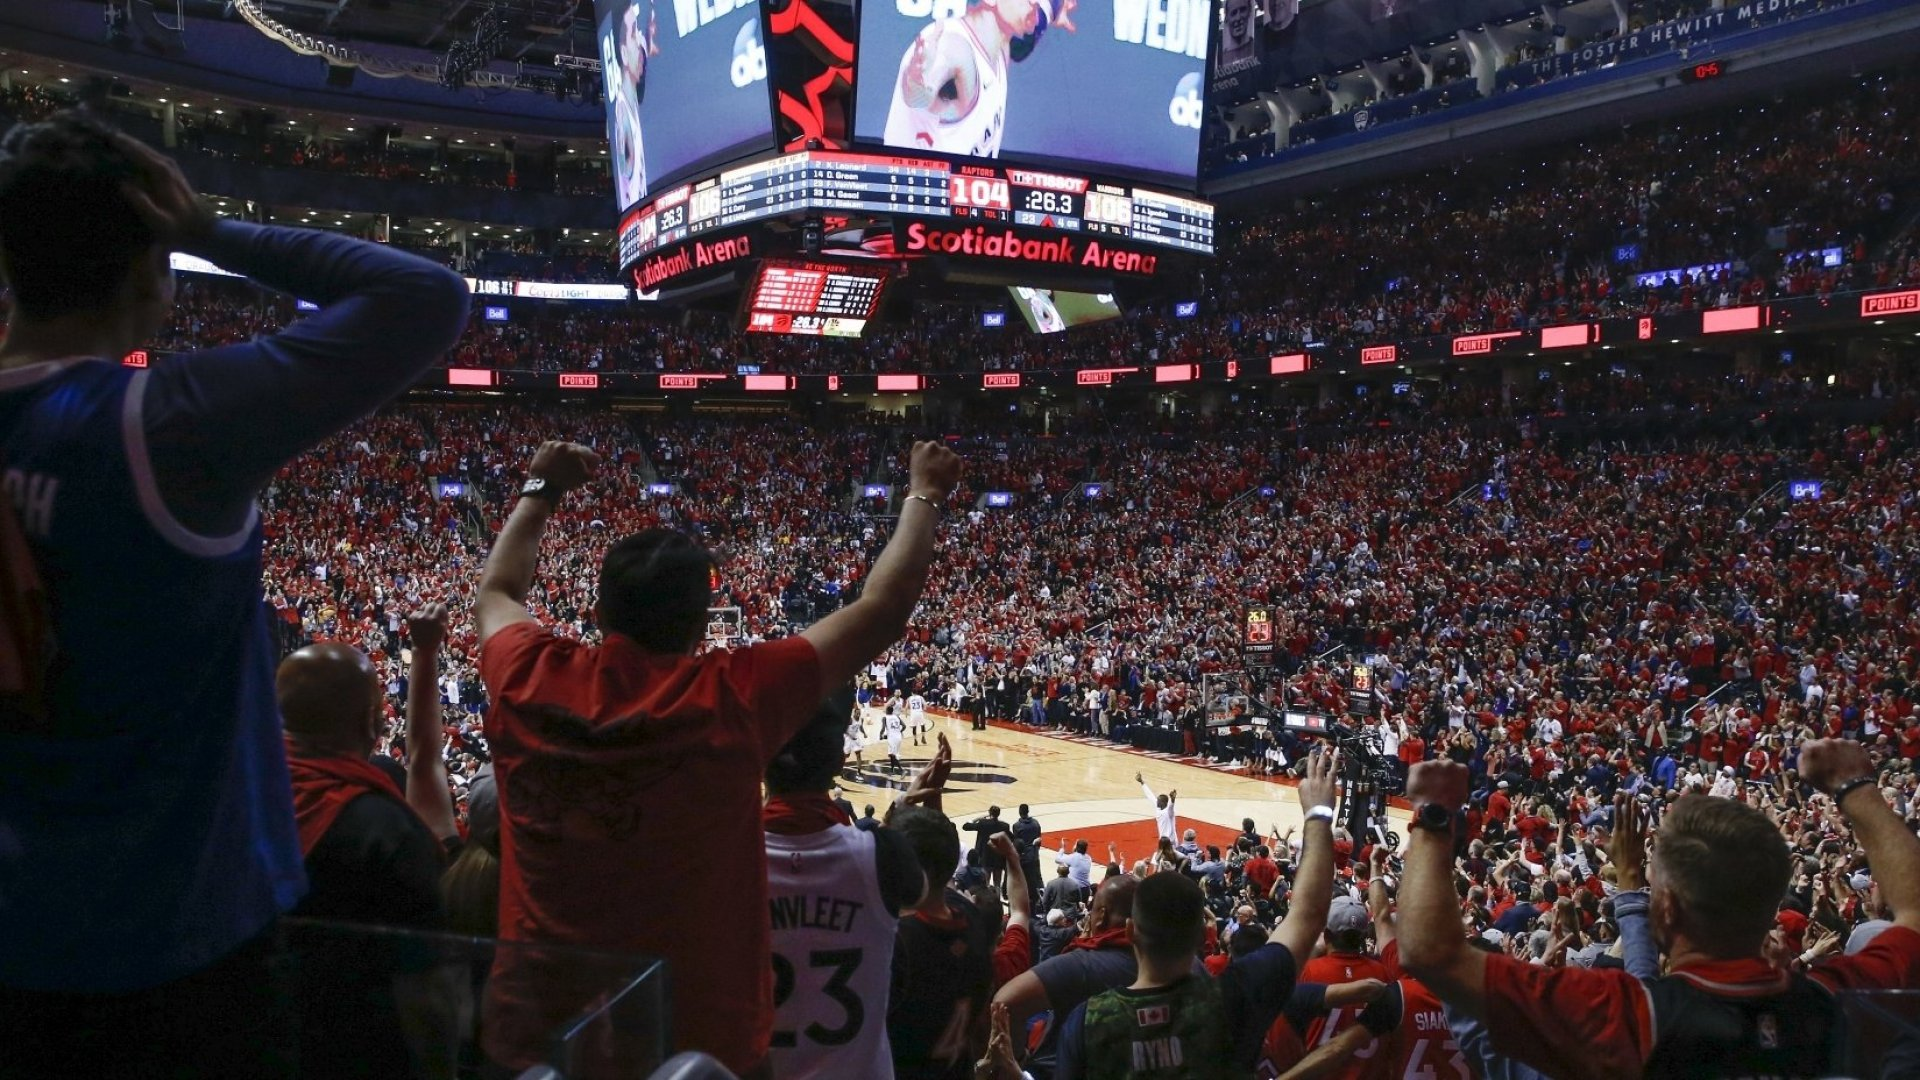 5 Lessons From the Toronto Raptors That Can Make Your Business Great